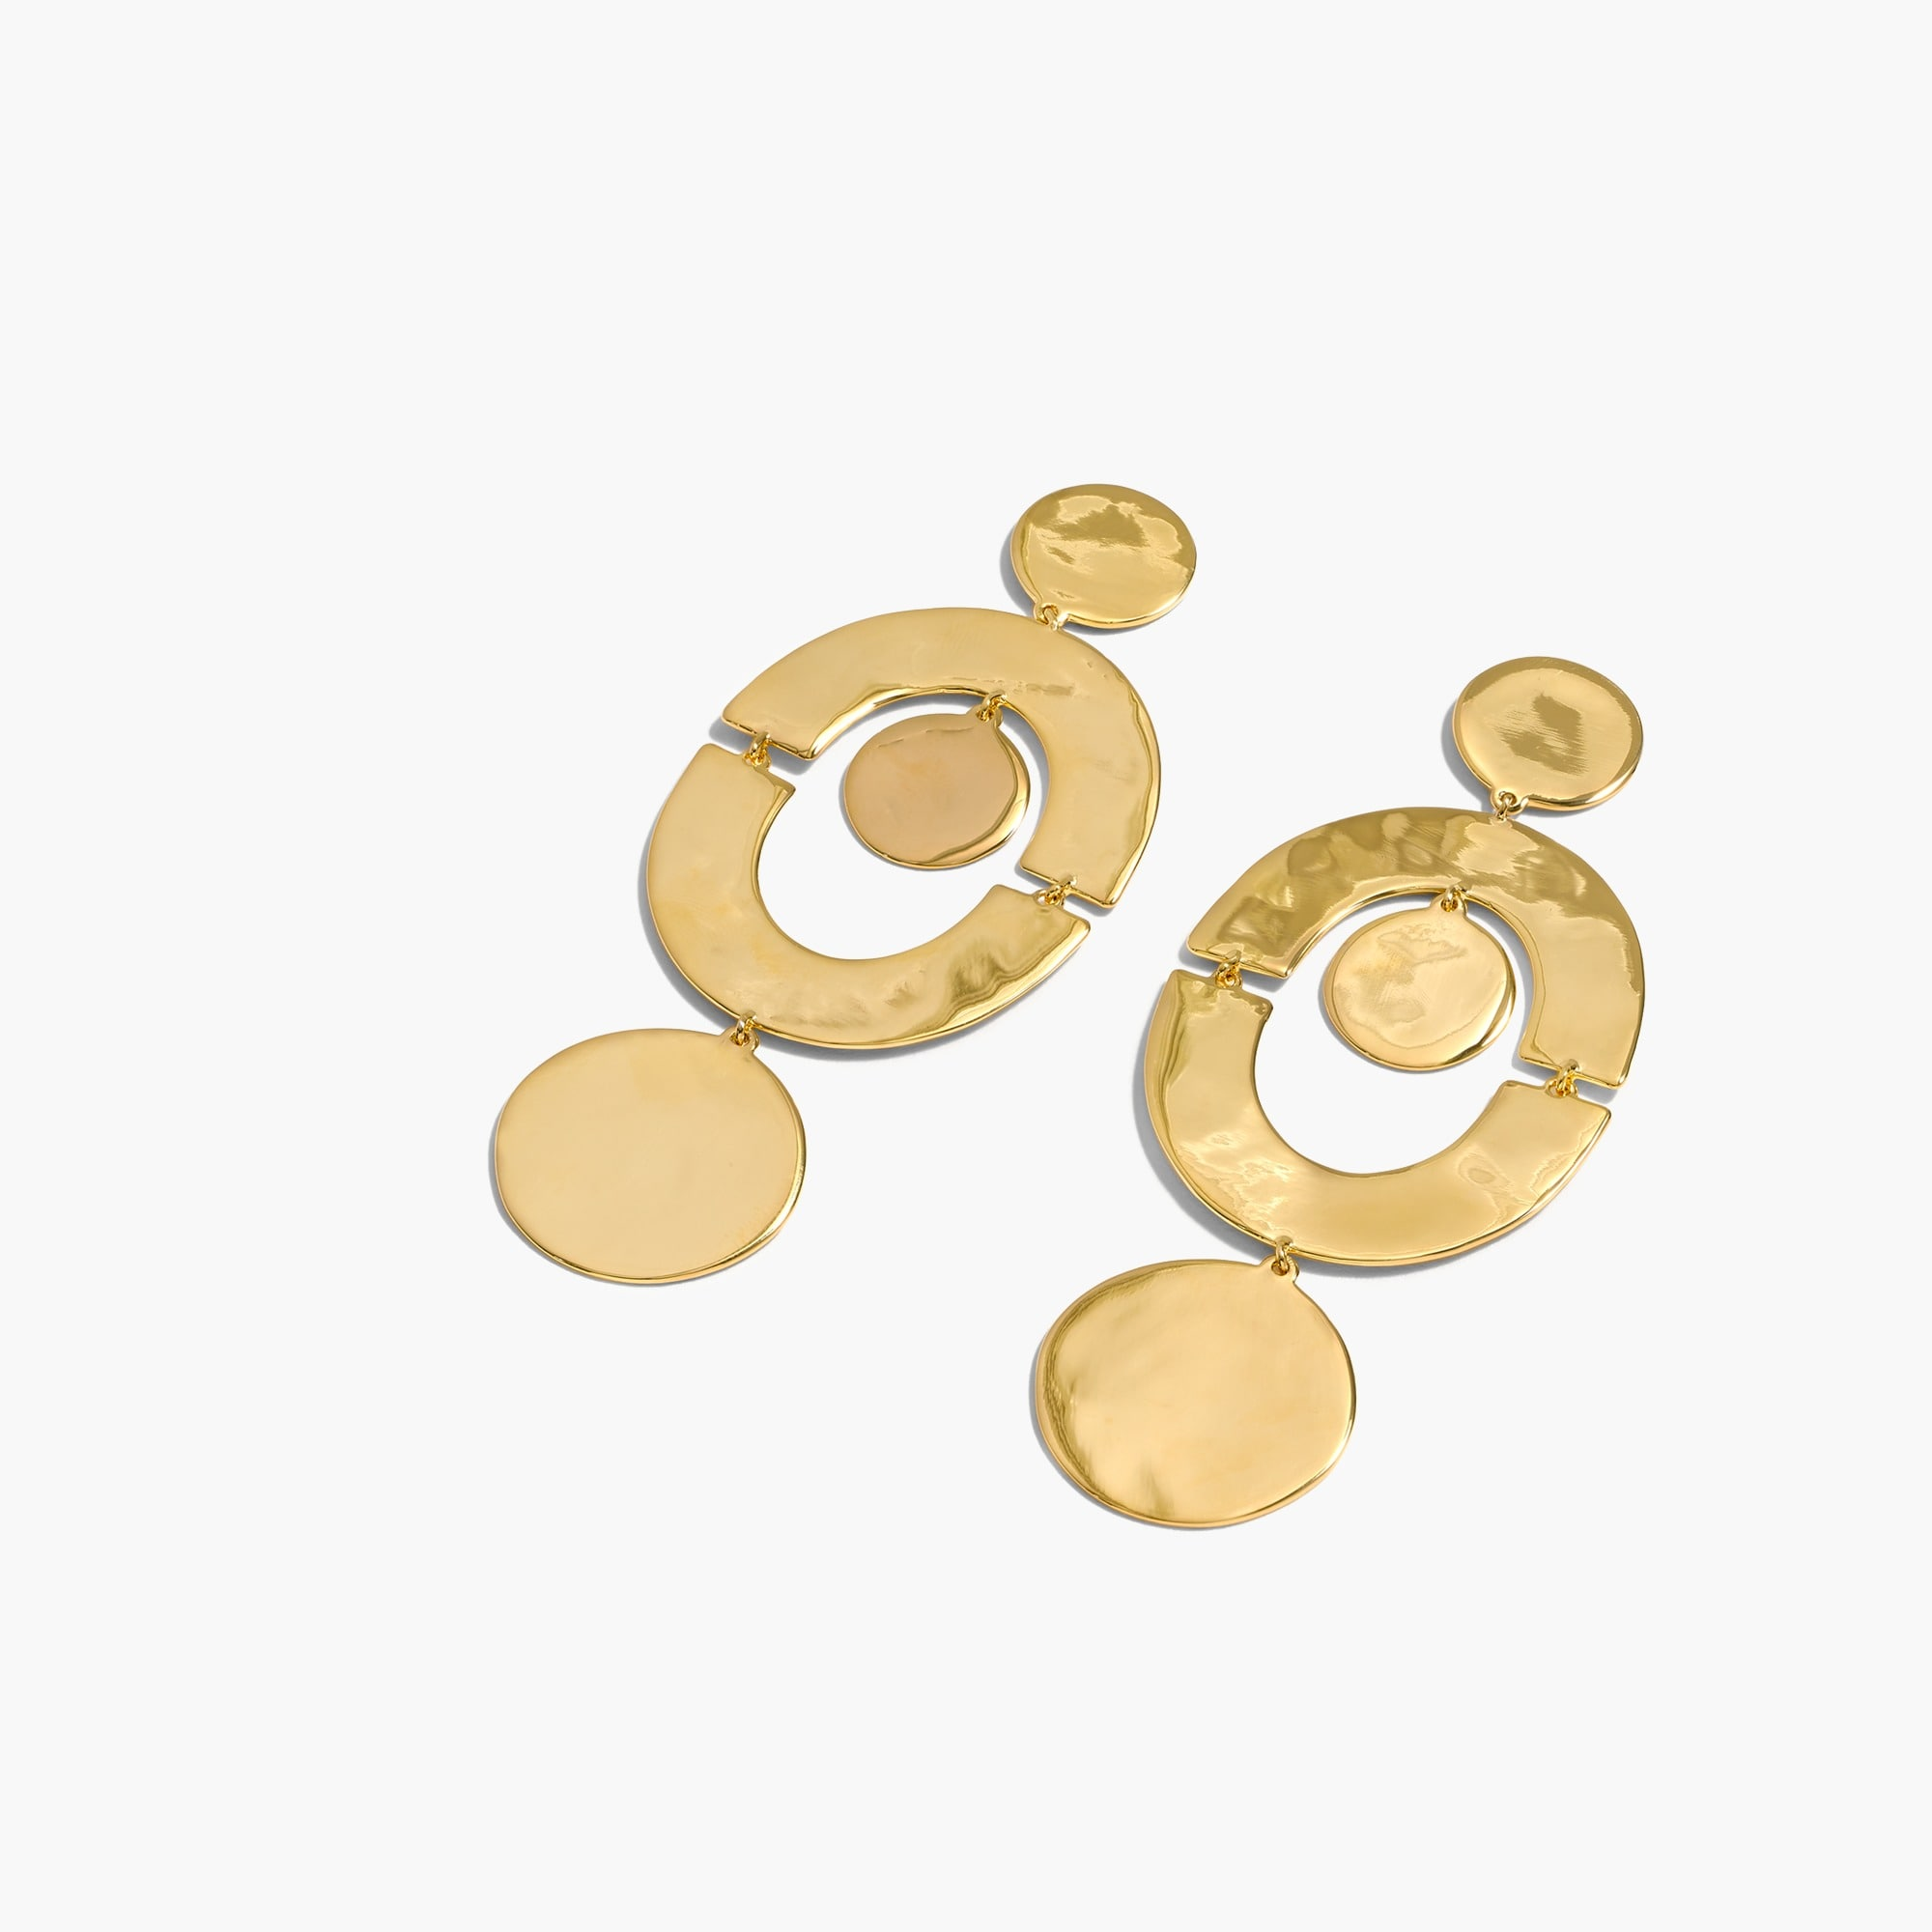 orbit earrings : women new arrivals